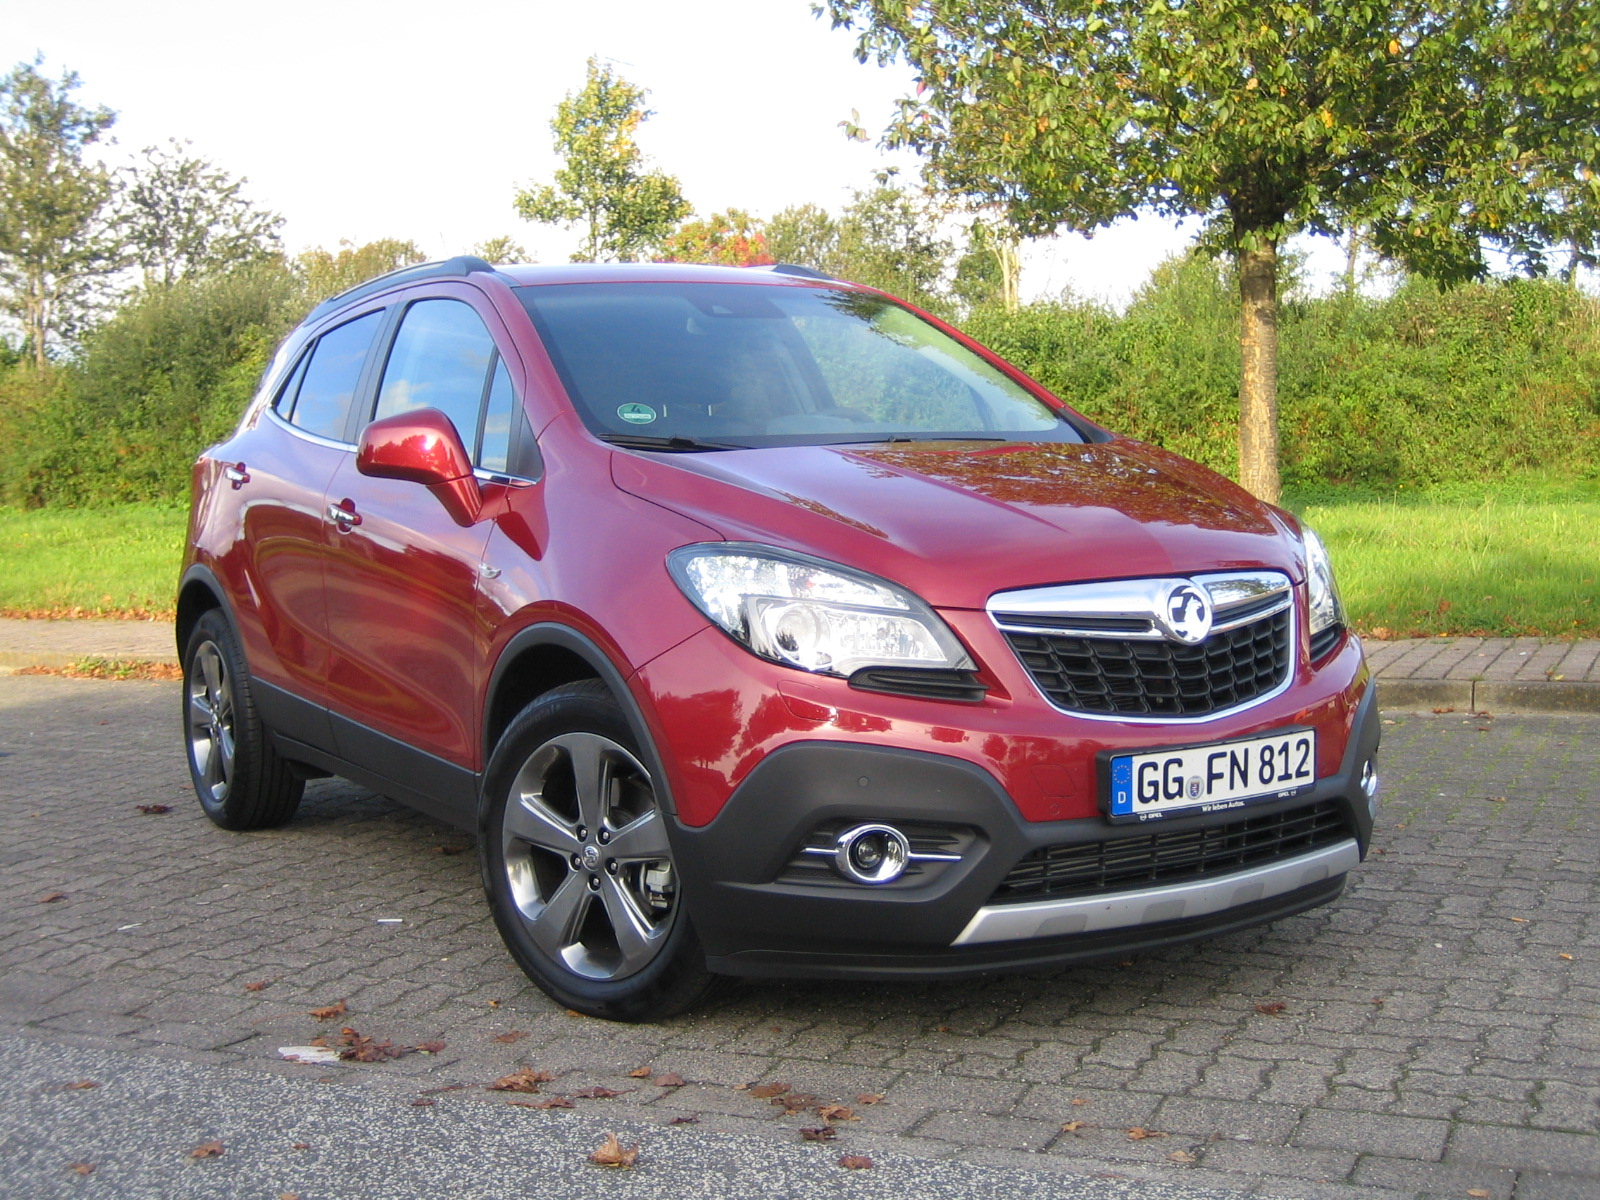 vauxhall mokka review we road test the revised car for uk roads. Black Bedroom Furniture Sets. Home Design Ideas